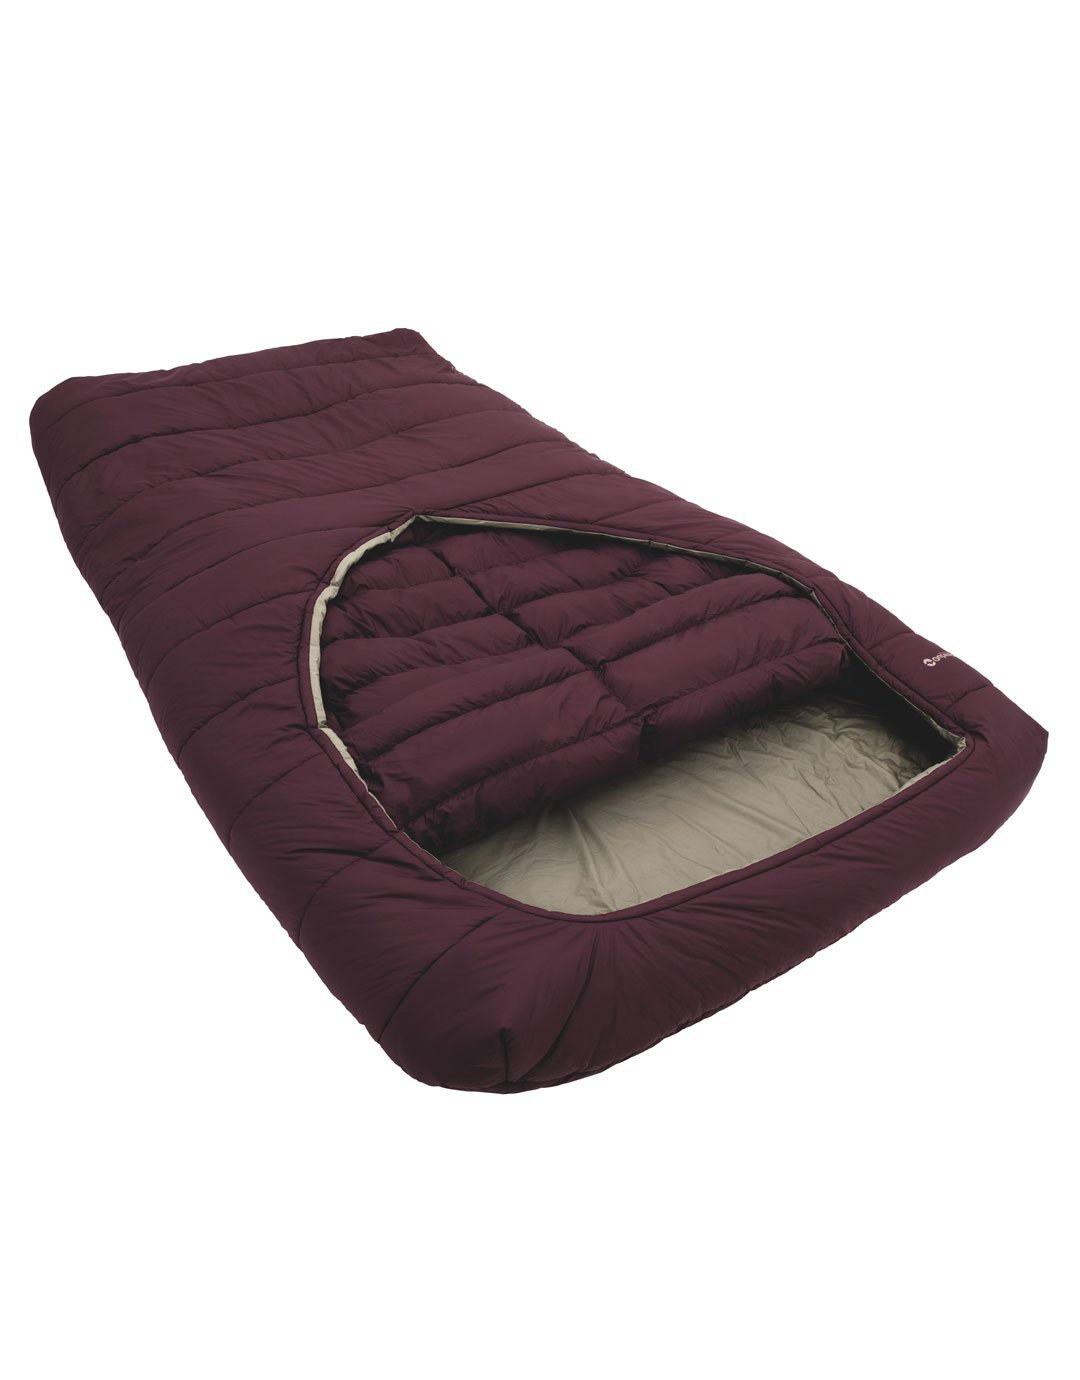 e5405b9fb29 Outwell Conqueror Double camp sleeping bag red 2016 mummy sleeping bag   Amazon.co.uk  Sports   Outdoors